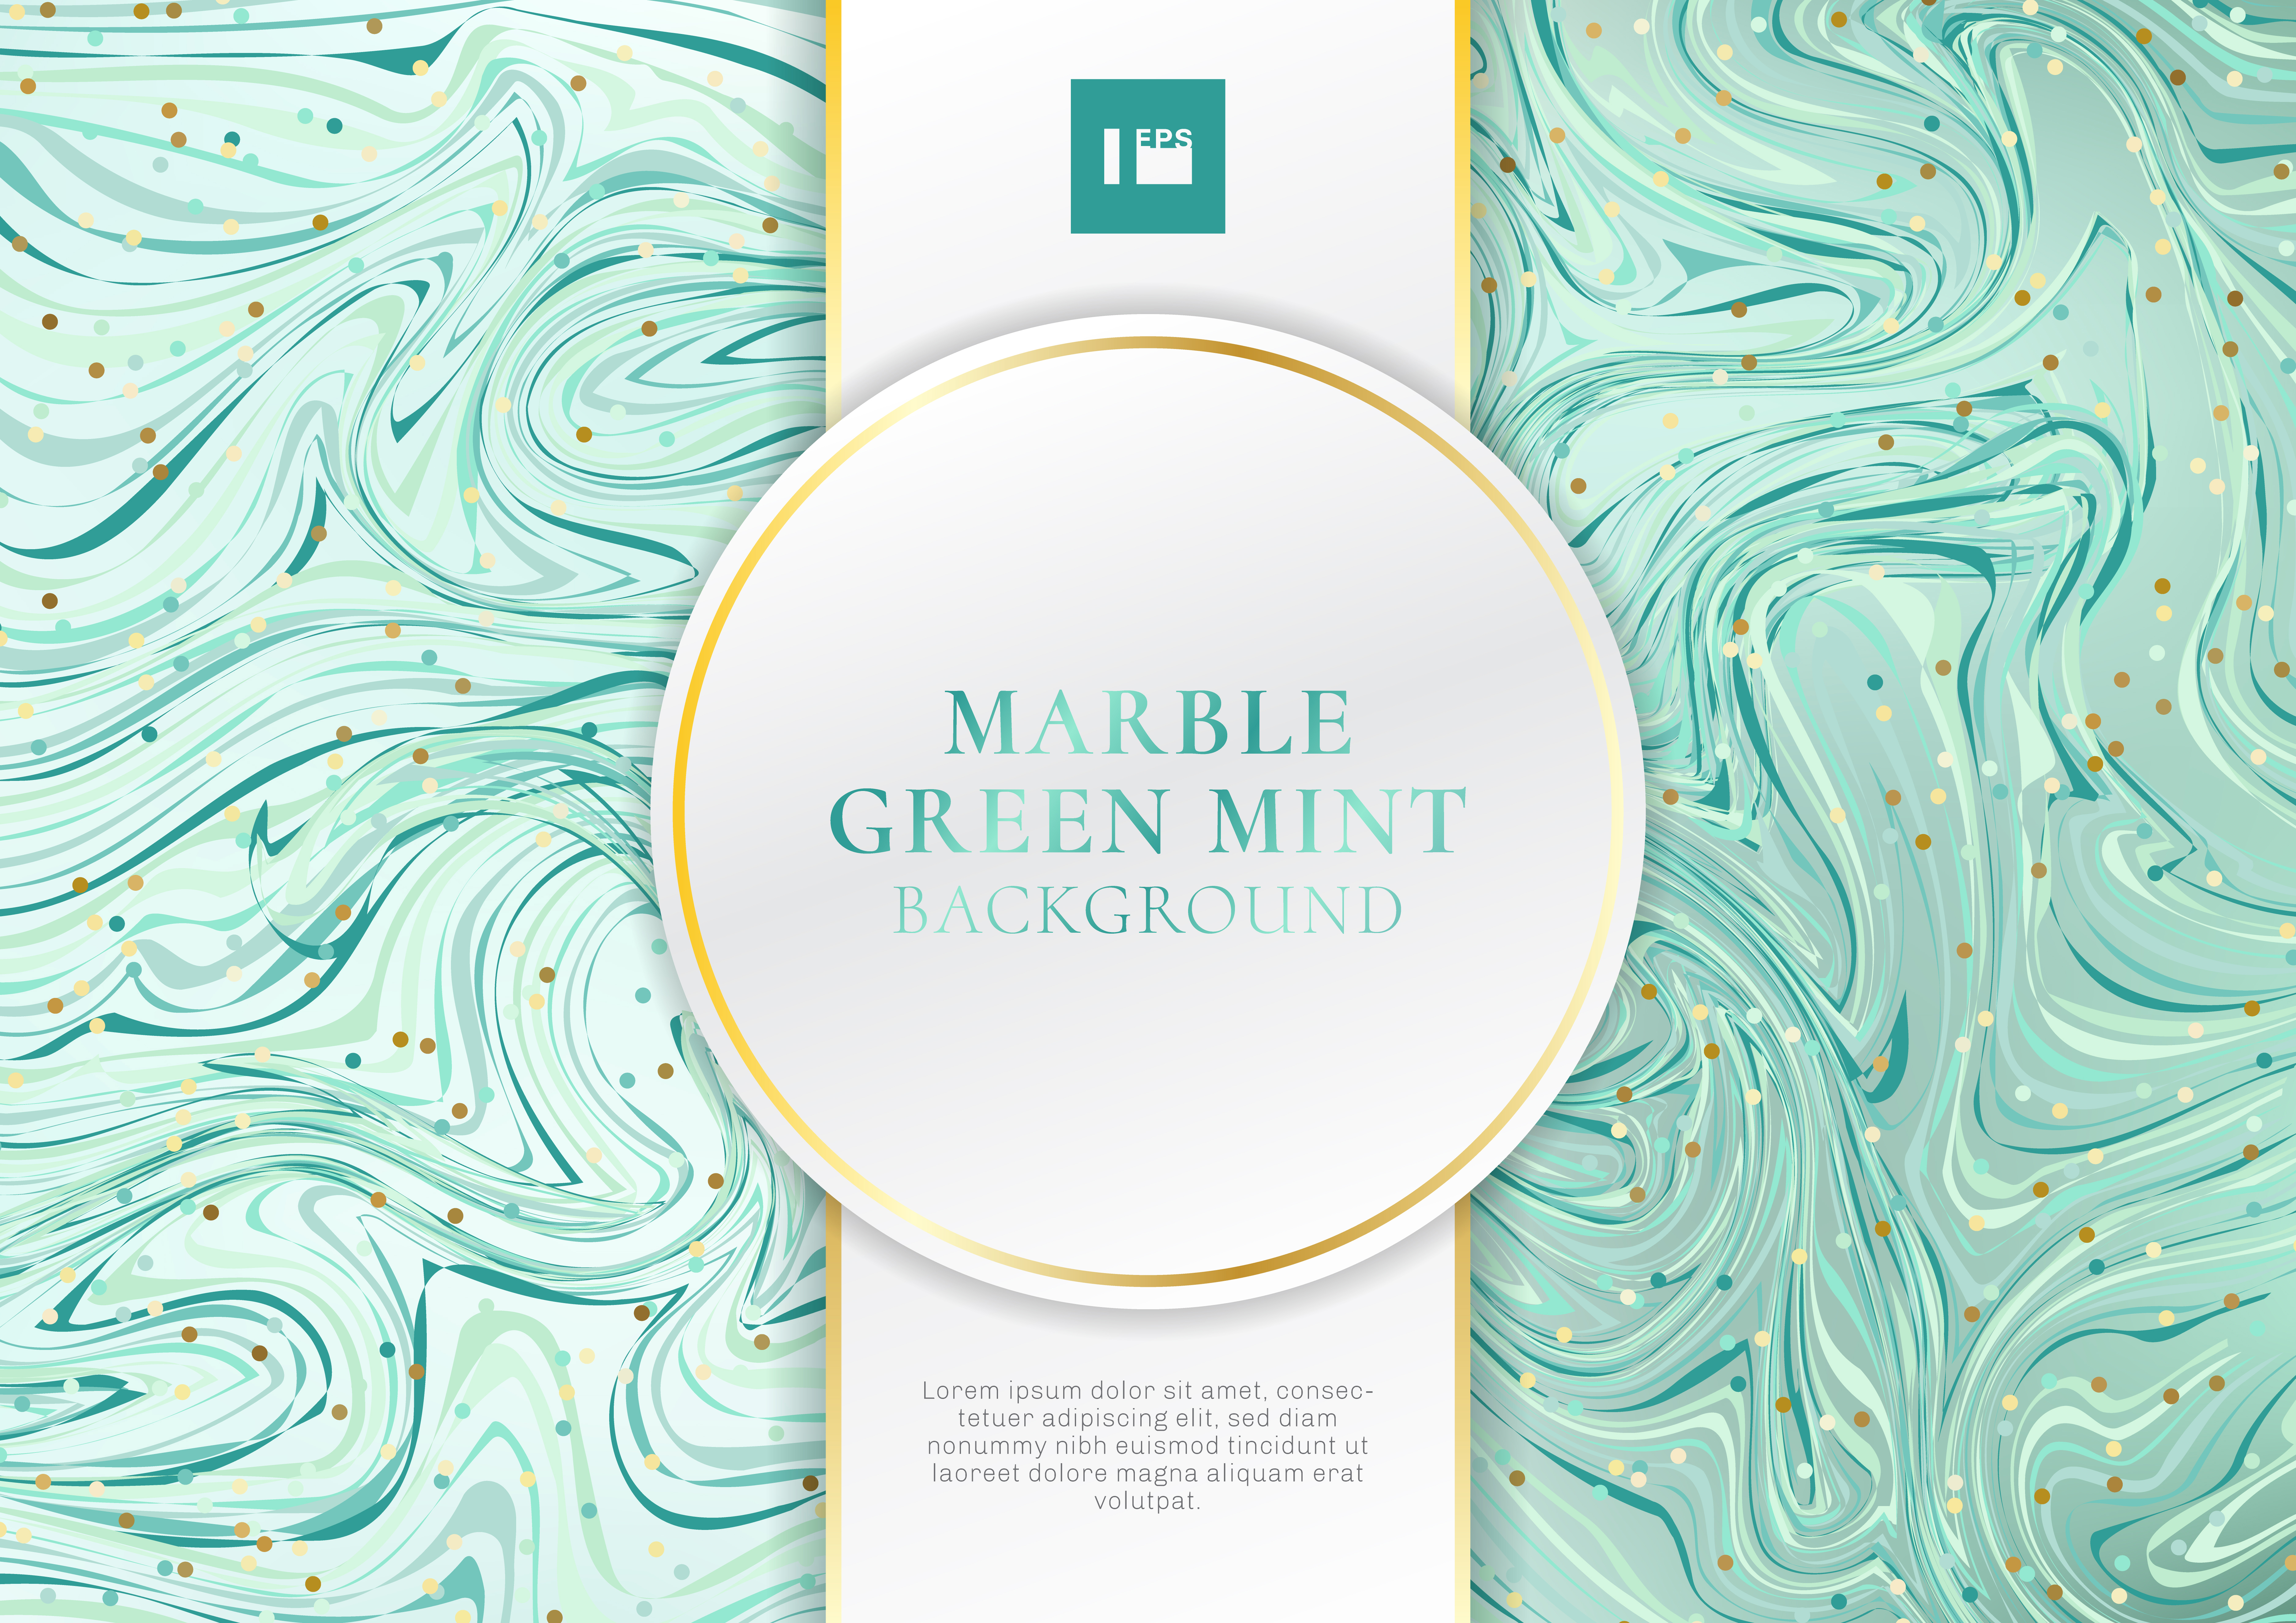 Green Mint Marble Background And Texture With White And Golden Label Luxury Style Space For Text 630685 Vector Art At Vecteezy